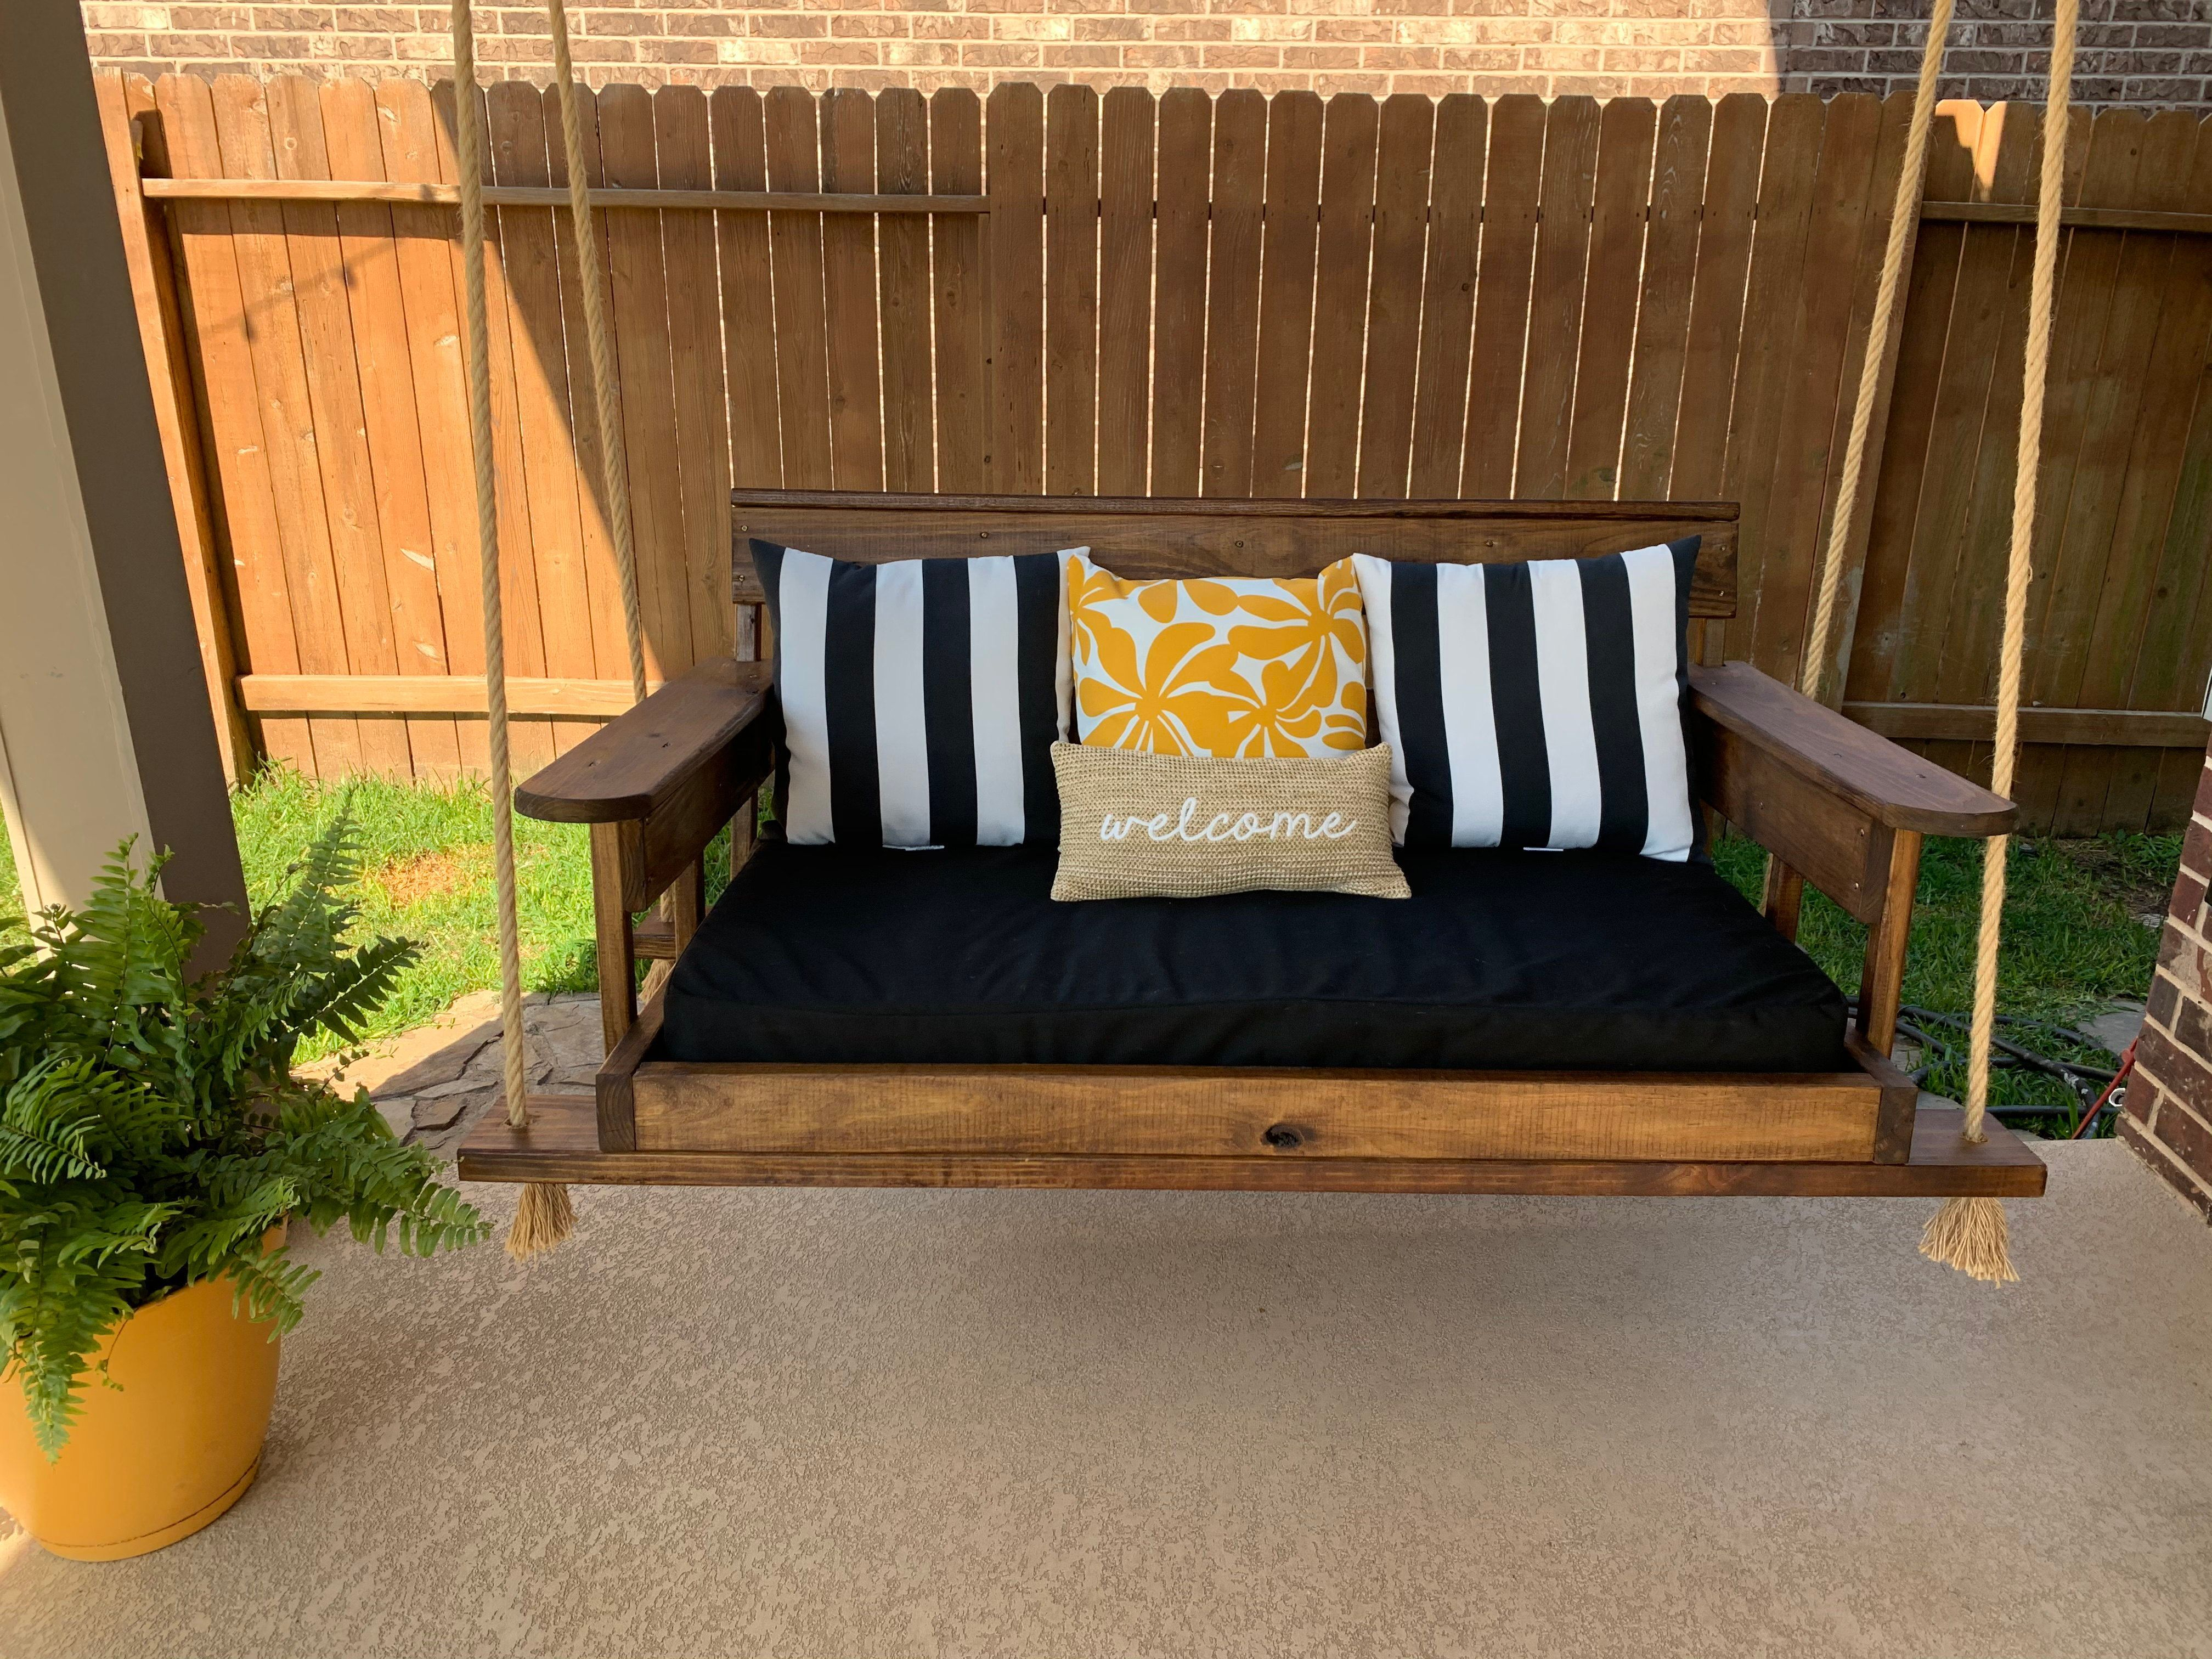 Custom Sunbrella Daybed Cover Outdoor Fabric Mattress Etsy In 2020 Porch Swing Outdoor Mattress Bed Swing